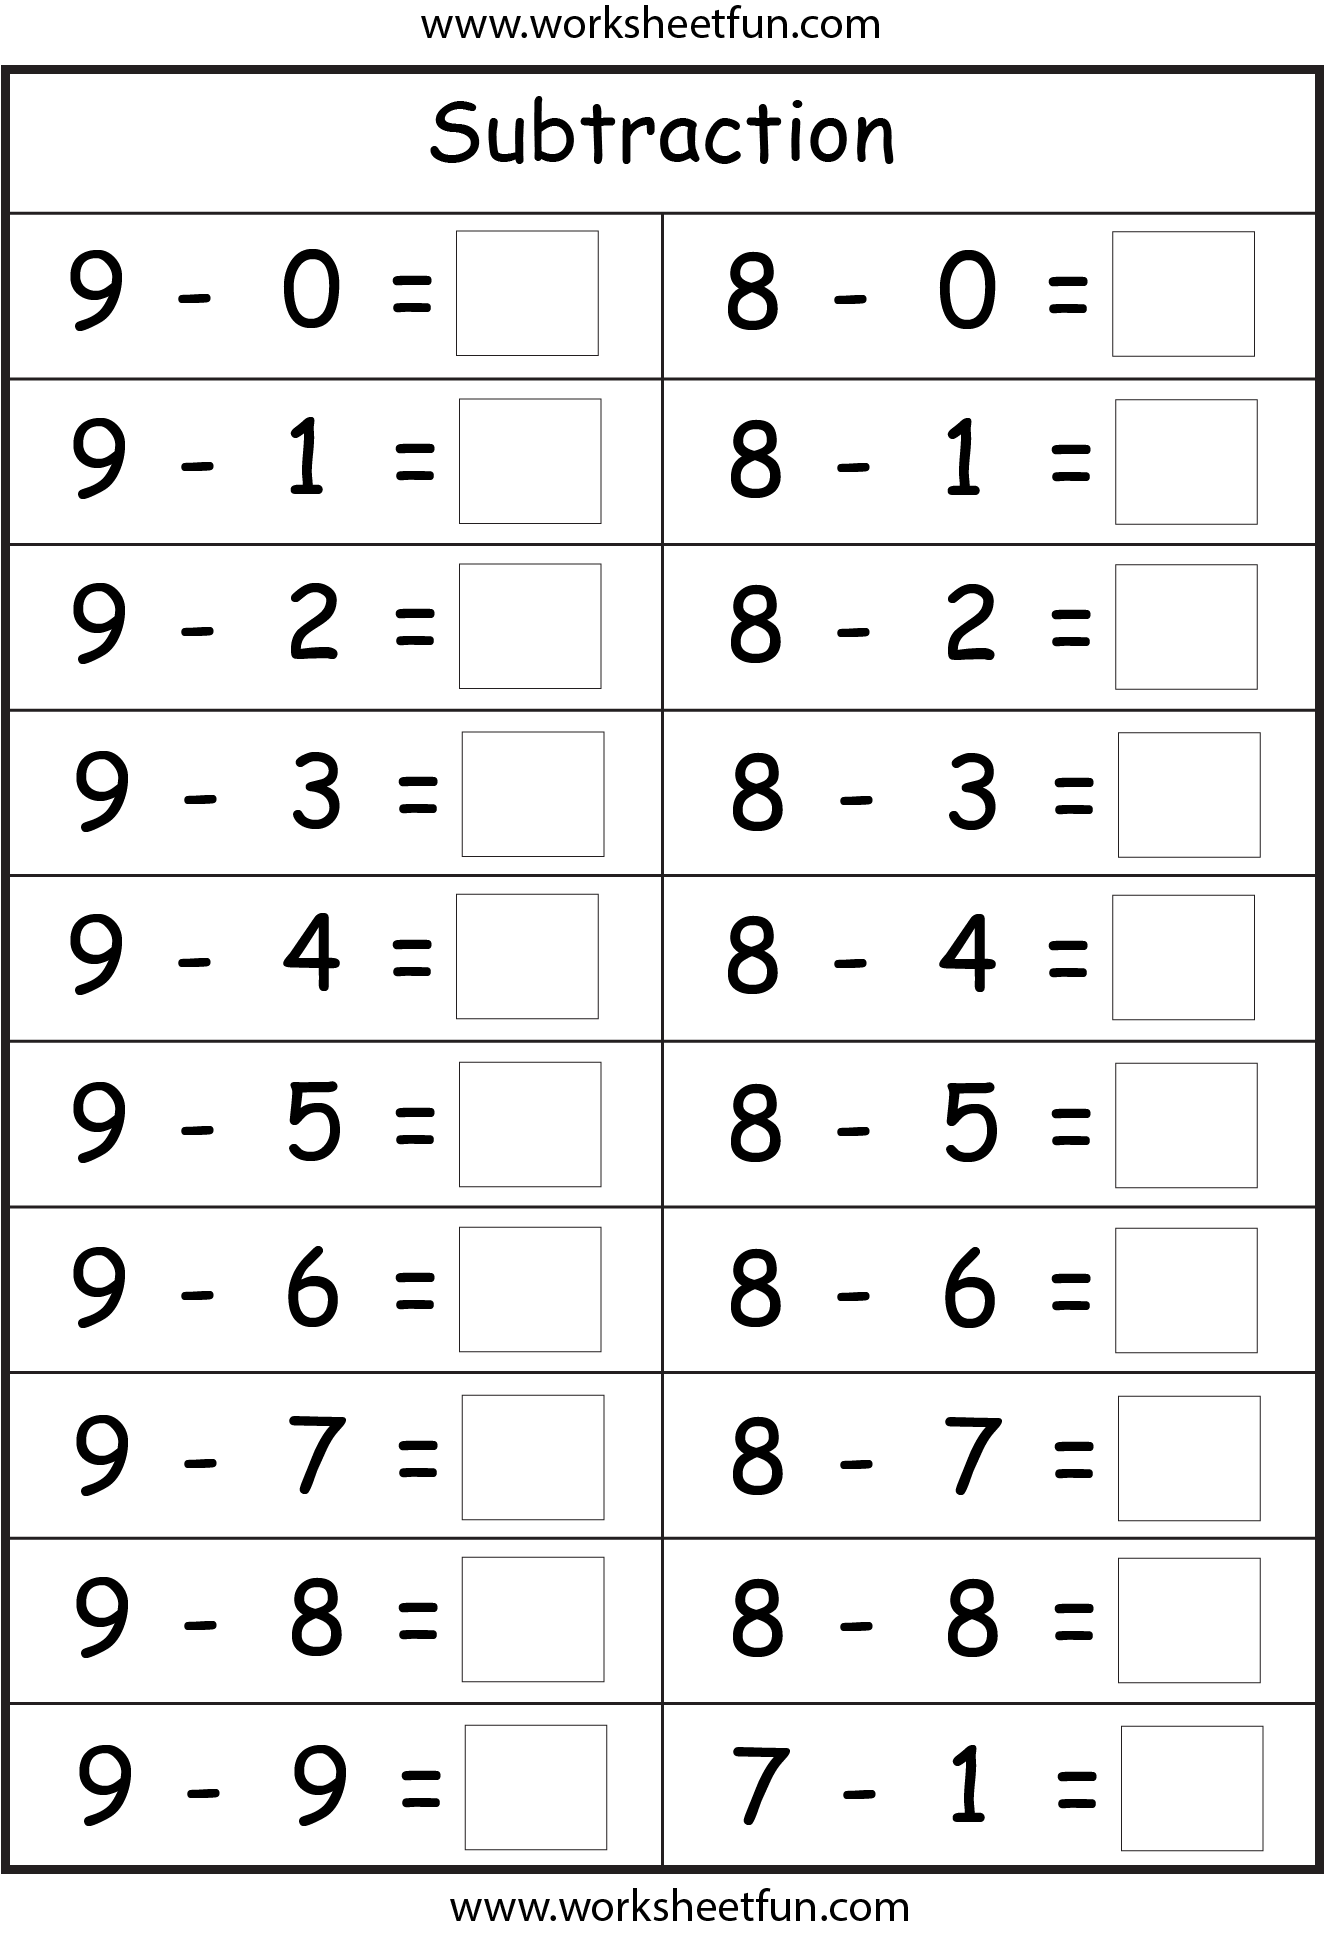 Subtraction - 4 Worksheets | Numeros | Pinterest | Números ...